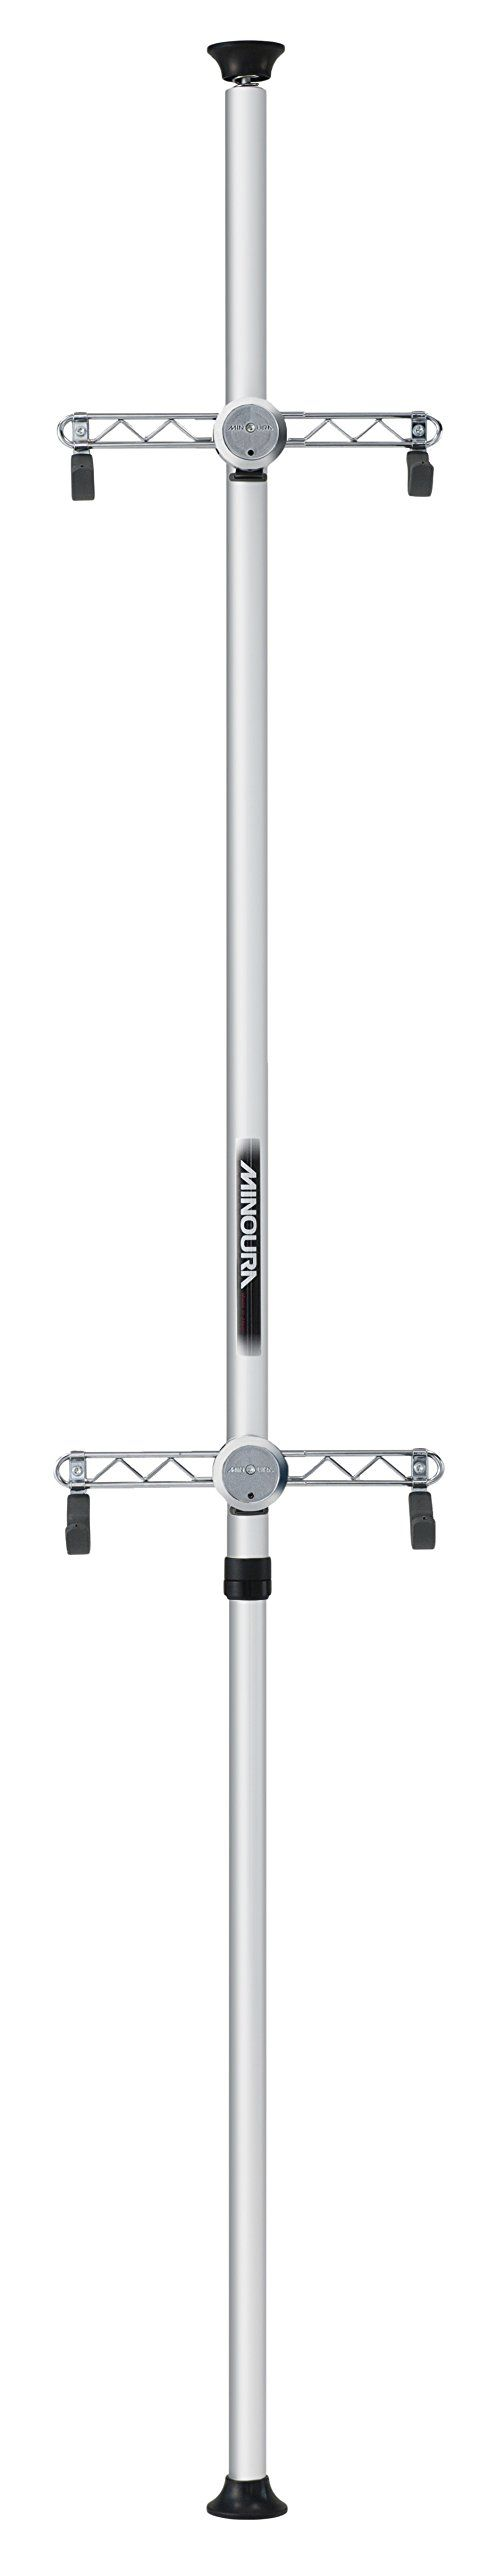 Minoura Bike Tower 20 Storage/Display Stand. Adjustable from 1.7-3.1 M (5.6-10.2 ft). Distance between hooks can be adjusted between 325-415 mm (12.8-16.3 in). Angle adjustable up to 10 degrees either way. Padded hooks to protect your bike frame. Double lock system and can hold up to 4 bikes with additional cradle.